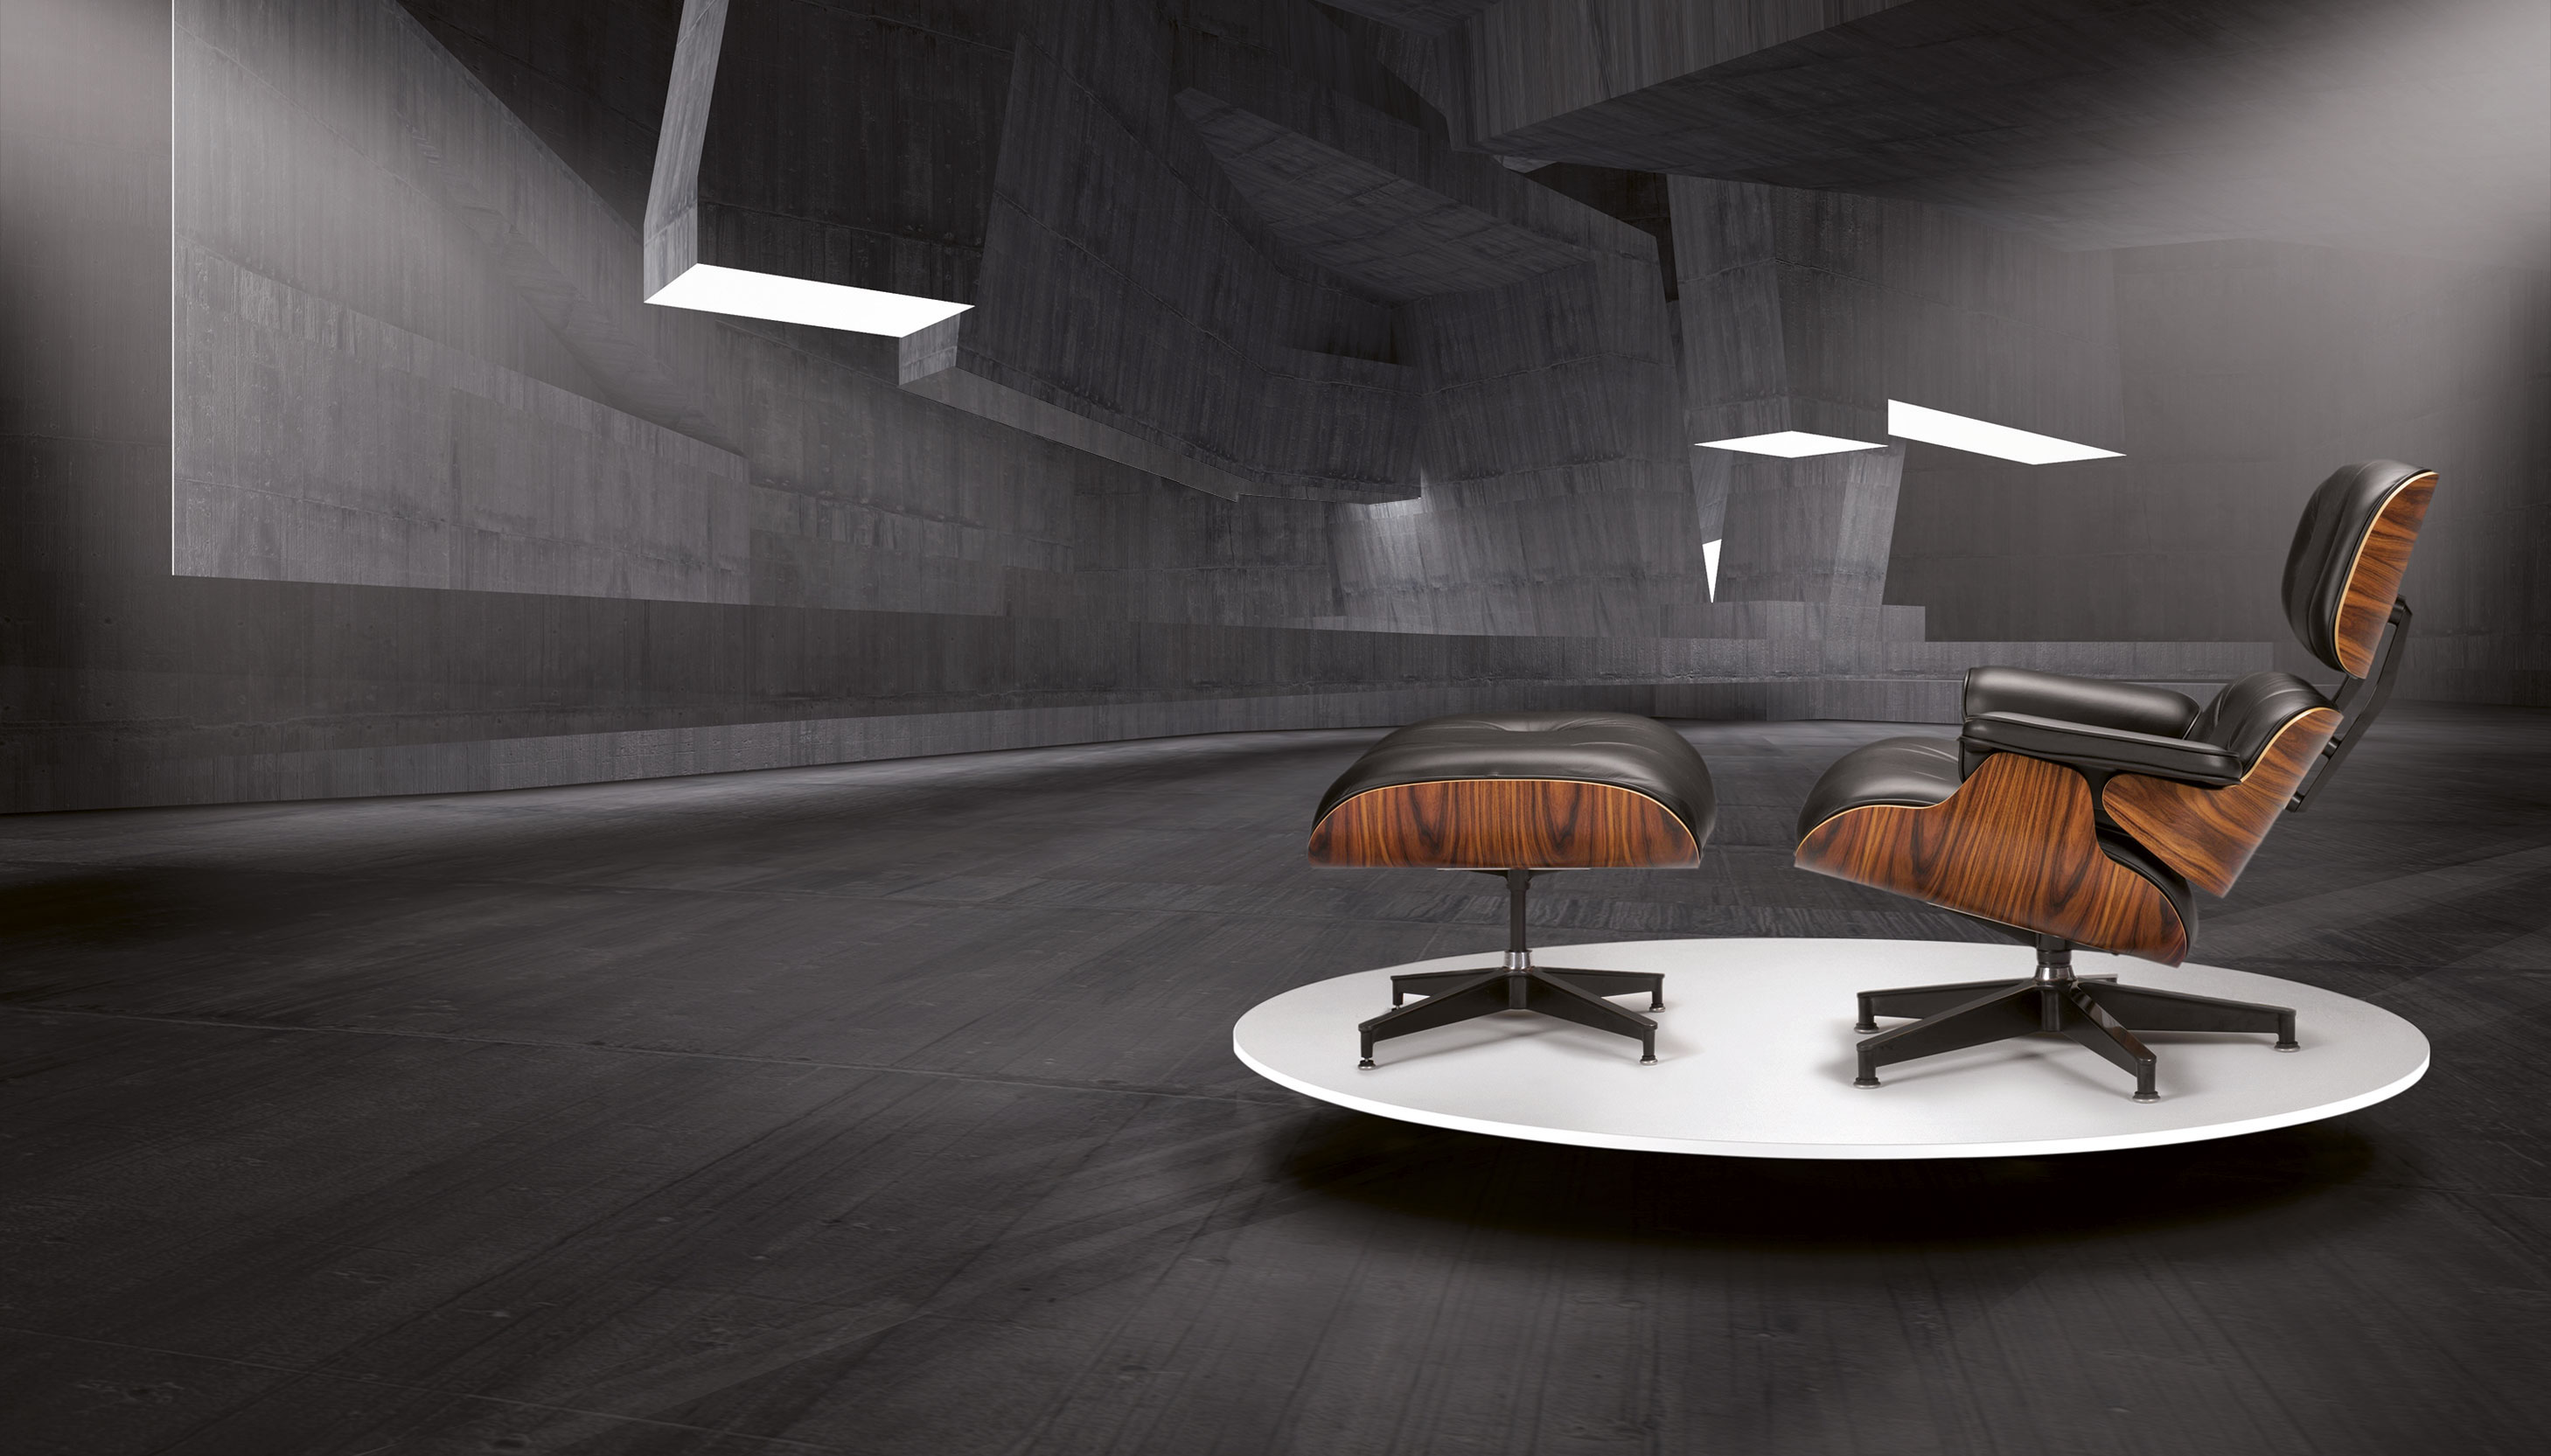 design furniture photographed by PhotoRobot turntable